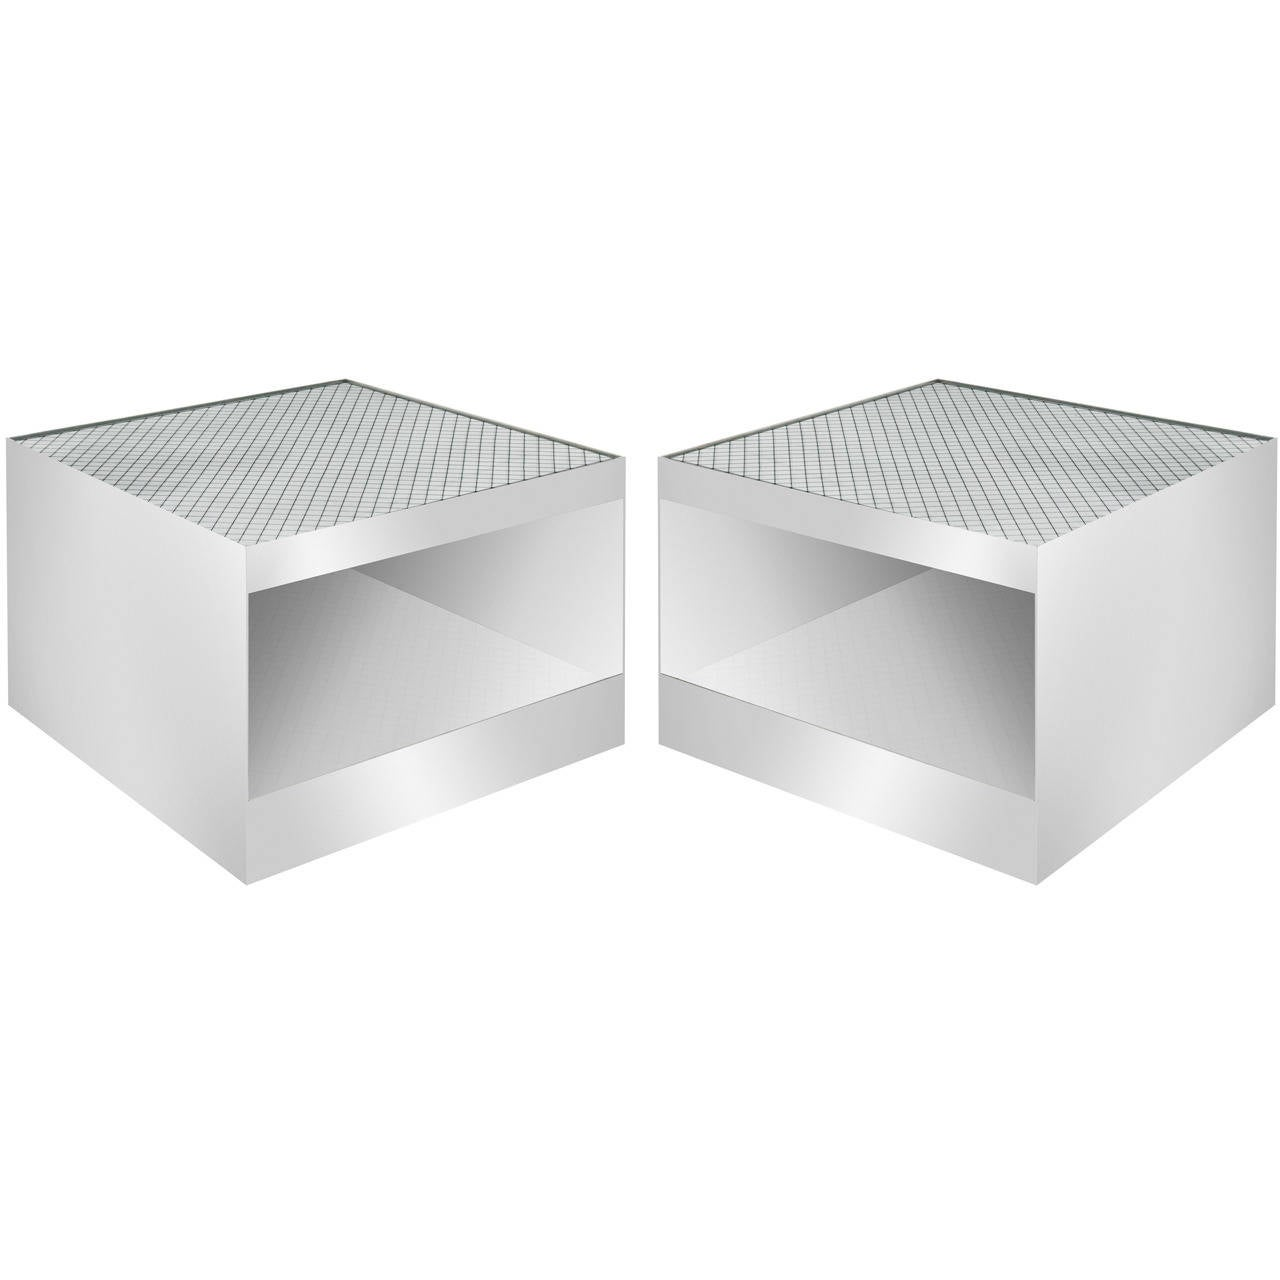 Pair Of Stainless Steel Coffee Tables By Joe D 39 Urso At 1stdibs